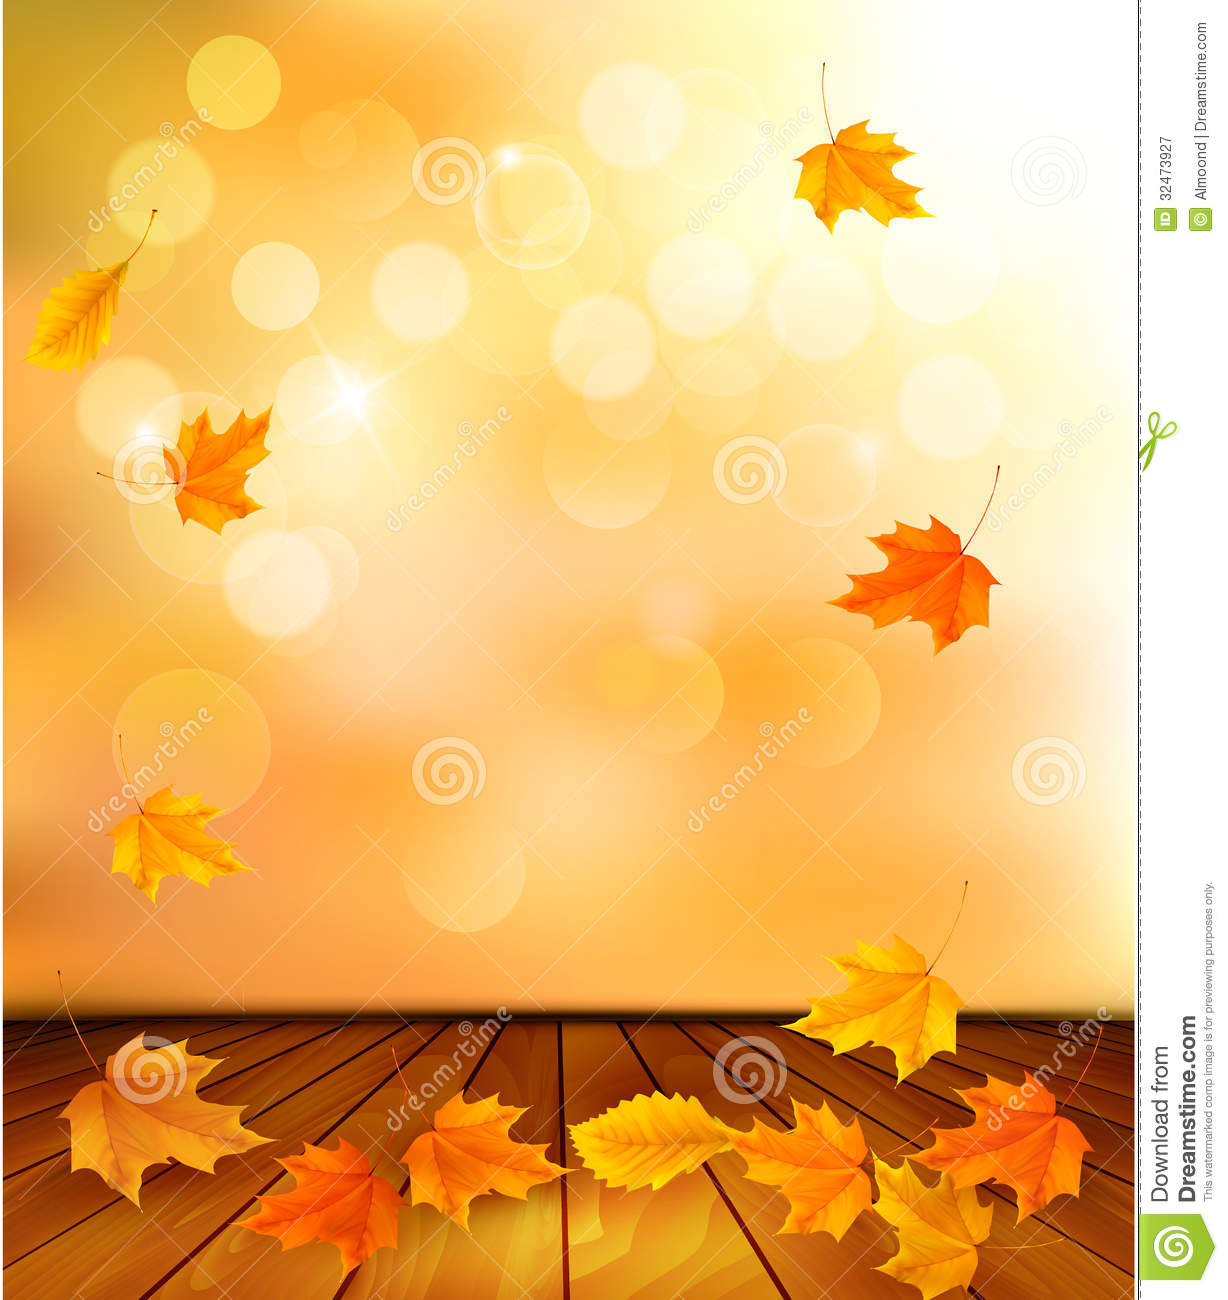 Background With Wooden Floor And Autumn Leaves. Royalty Free Stock ...